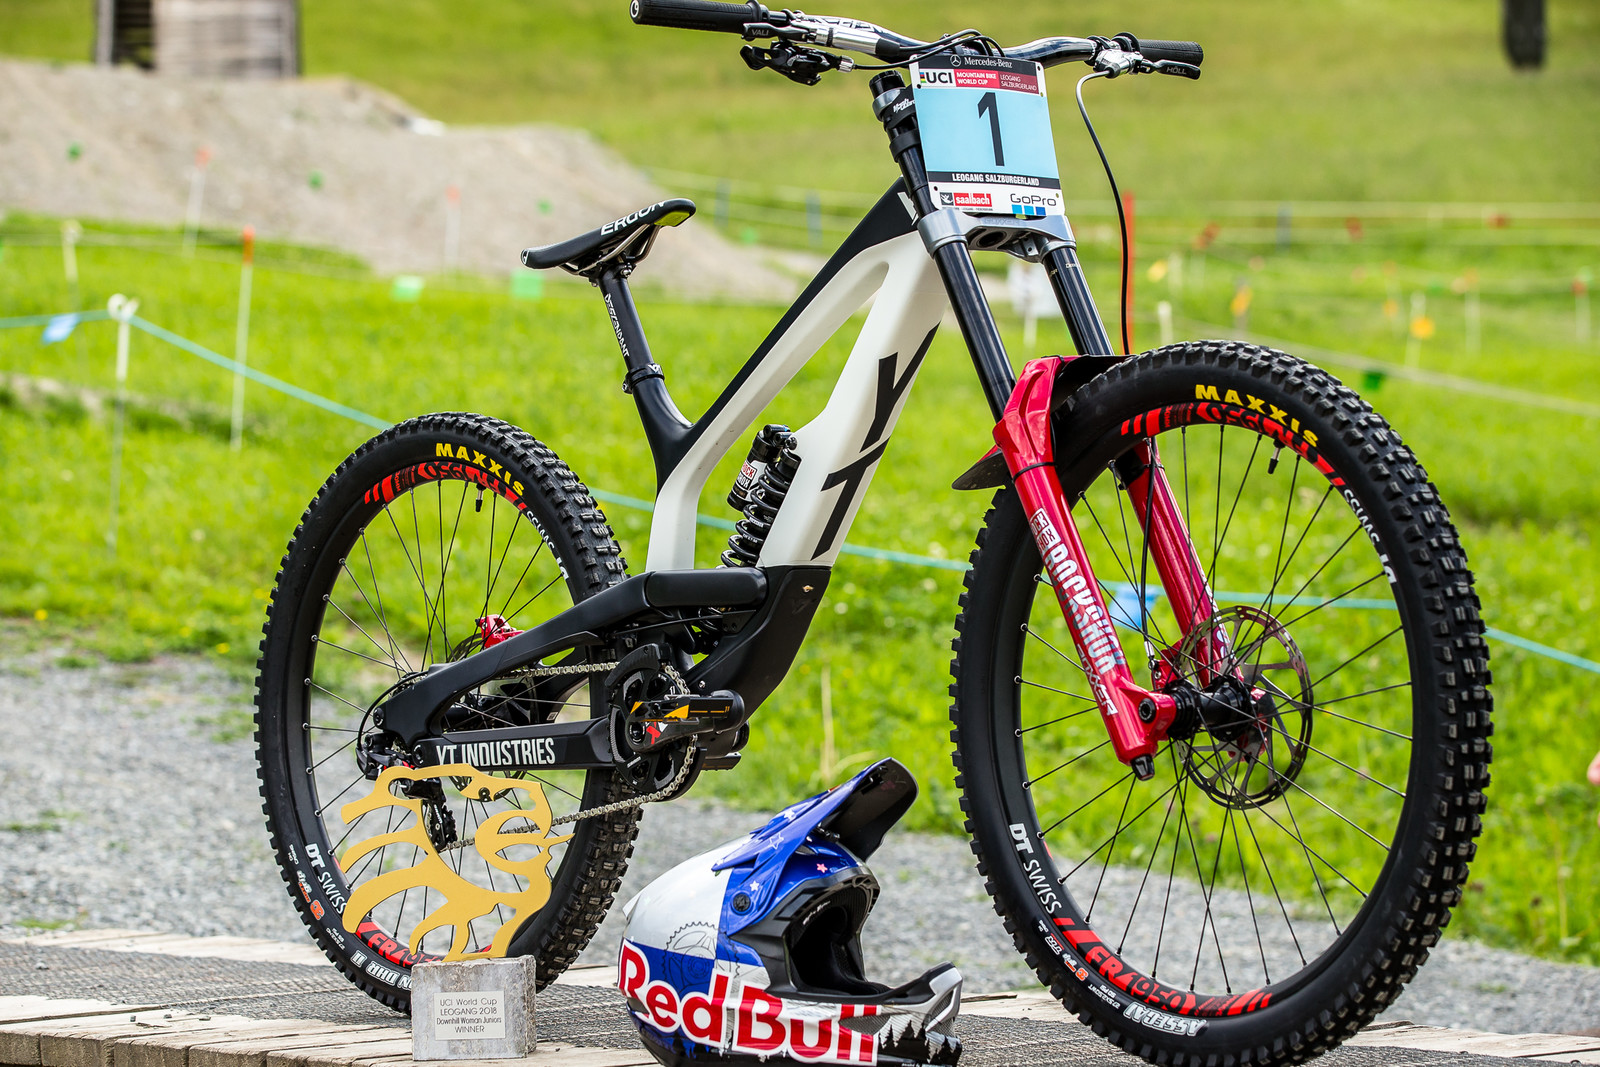 One Dialed Bike - WINNING BIKE - Vali Höll's YT TUES - Mountain Biking Pictures - Vital MTB